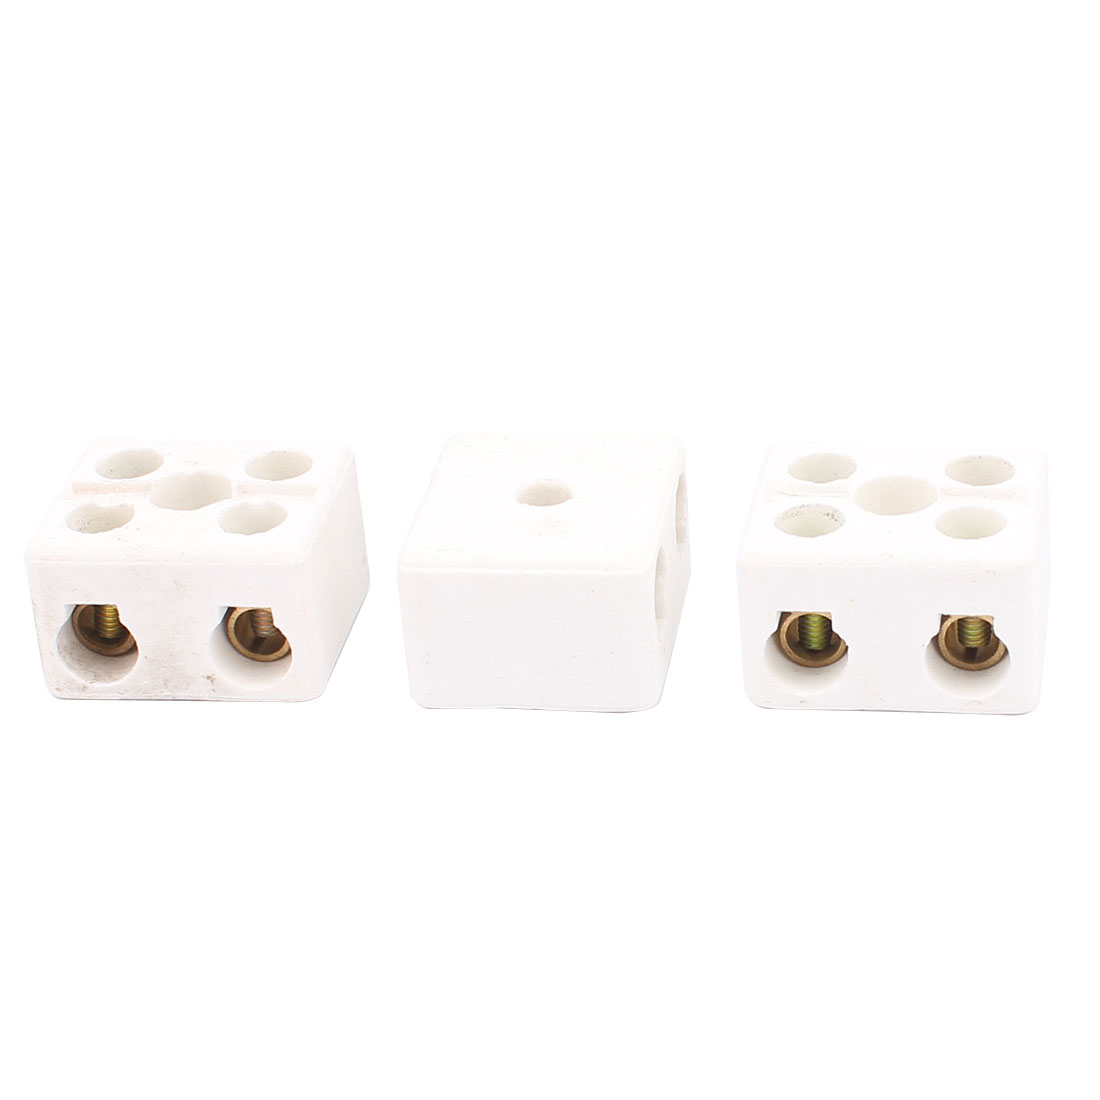 3PCS Cable Connector 2 Position 2 Row Ceramic Terminal Block 220V 30A